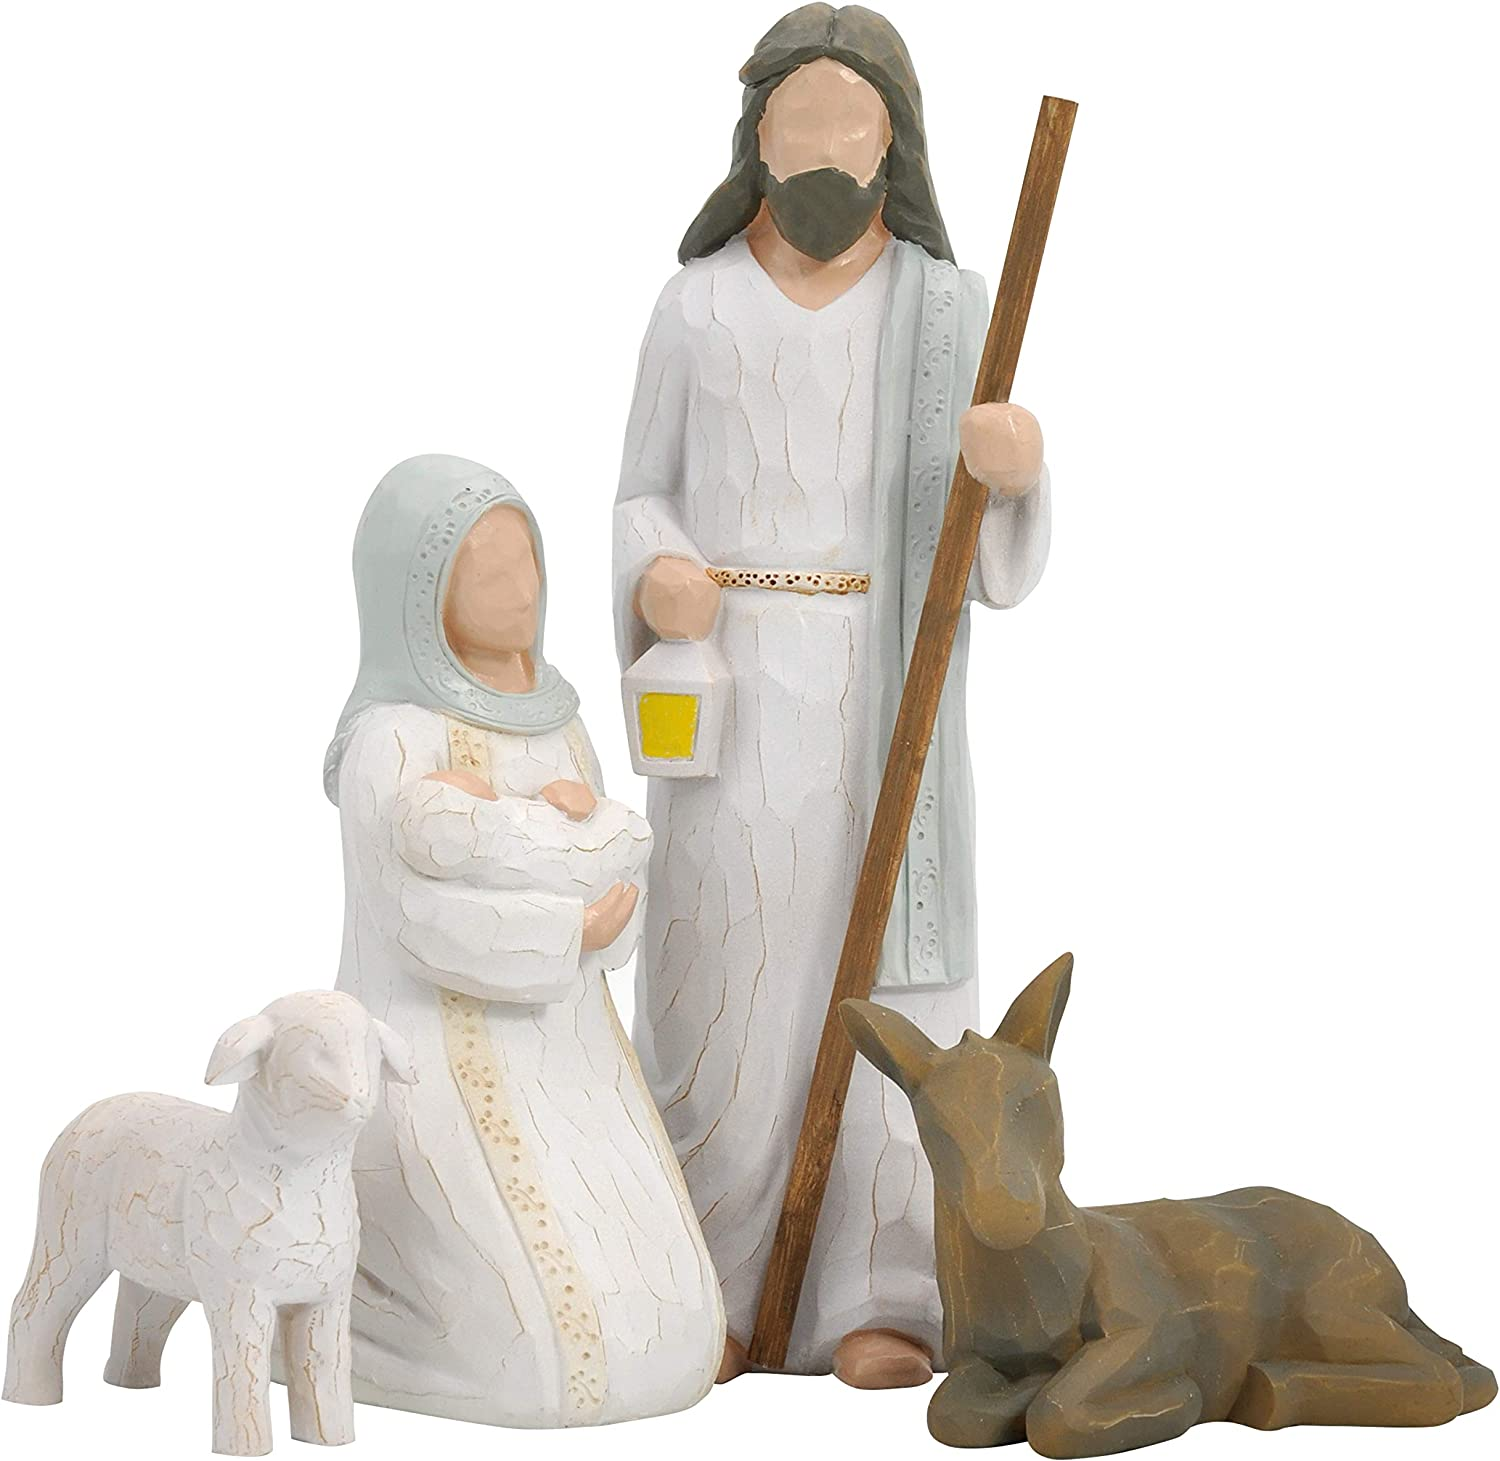 Christmas Story Set - Sculpted Style with Joseph, Mary Hold Baby Jesus, Donkey and a Lamb for Holiday Decoration and Christmas Eve Decor